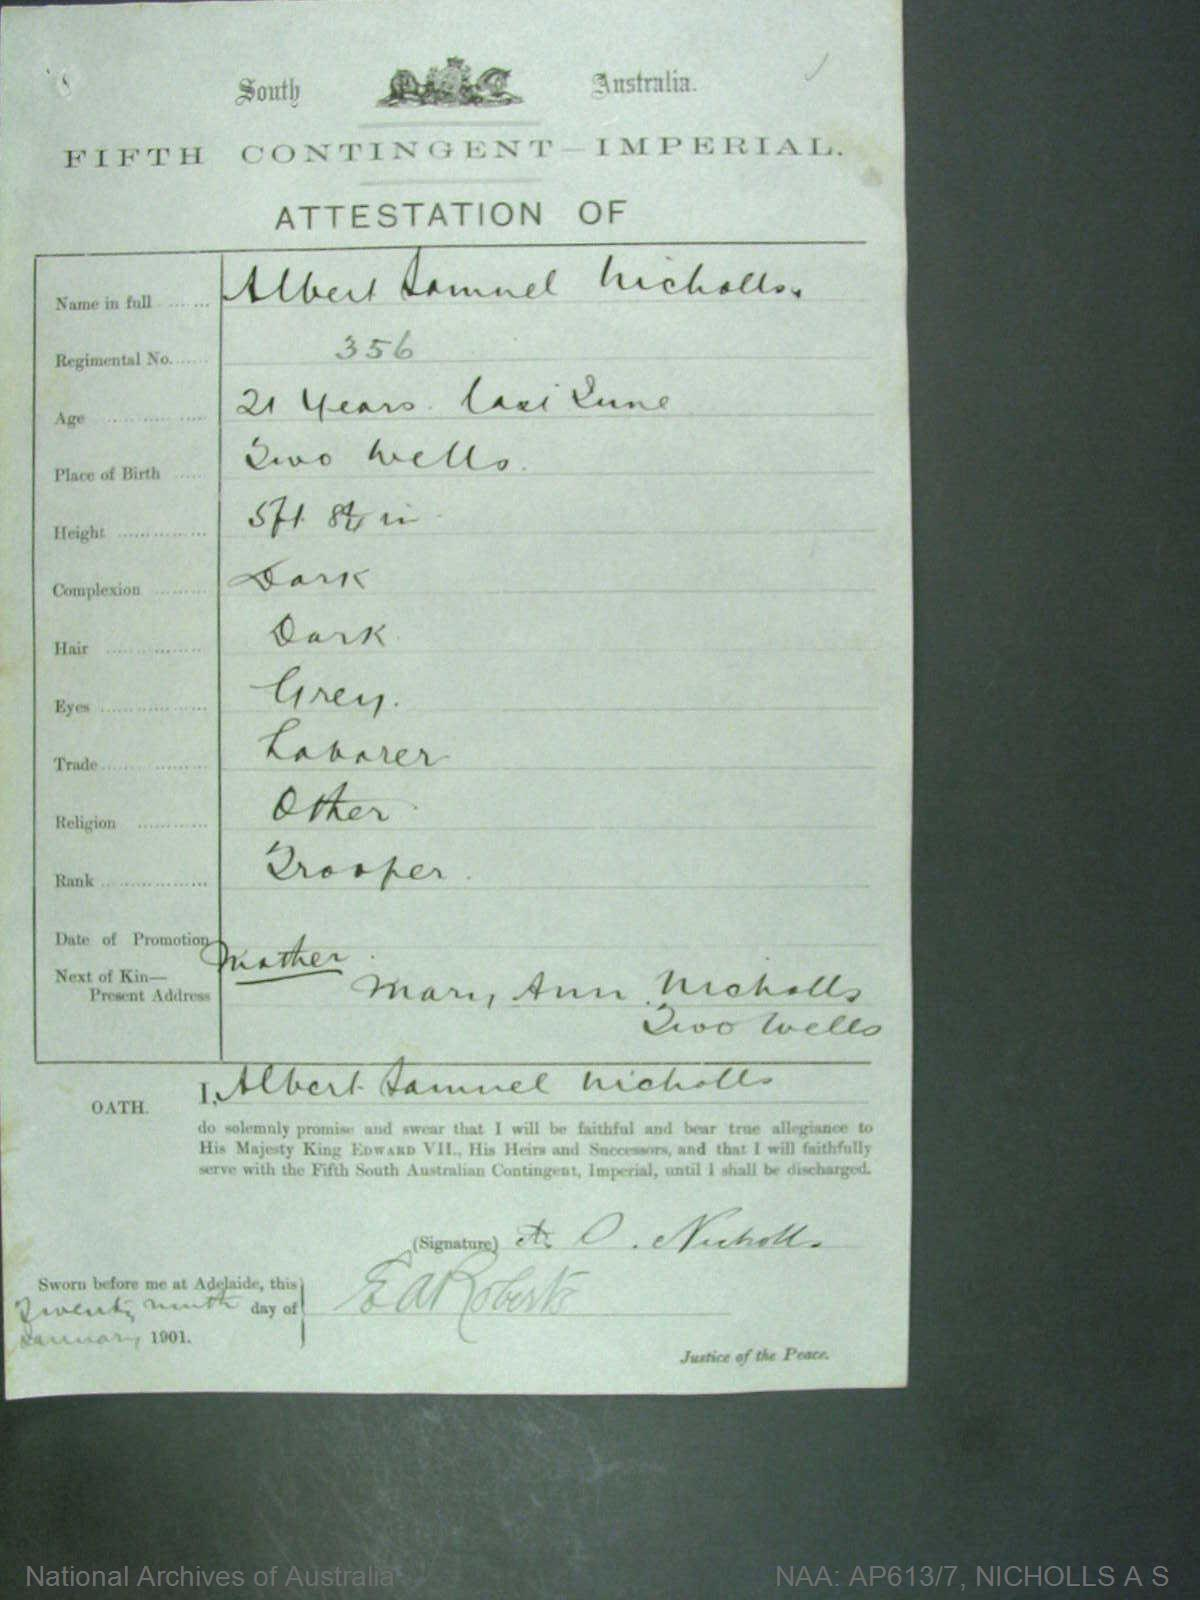 Nicholls, Albert Samuel regimental number 356 South Australia fifth contingent imperial - attestion of